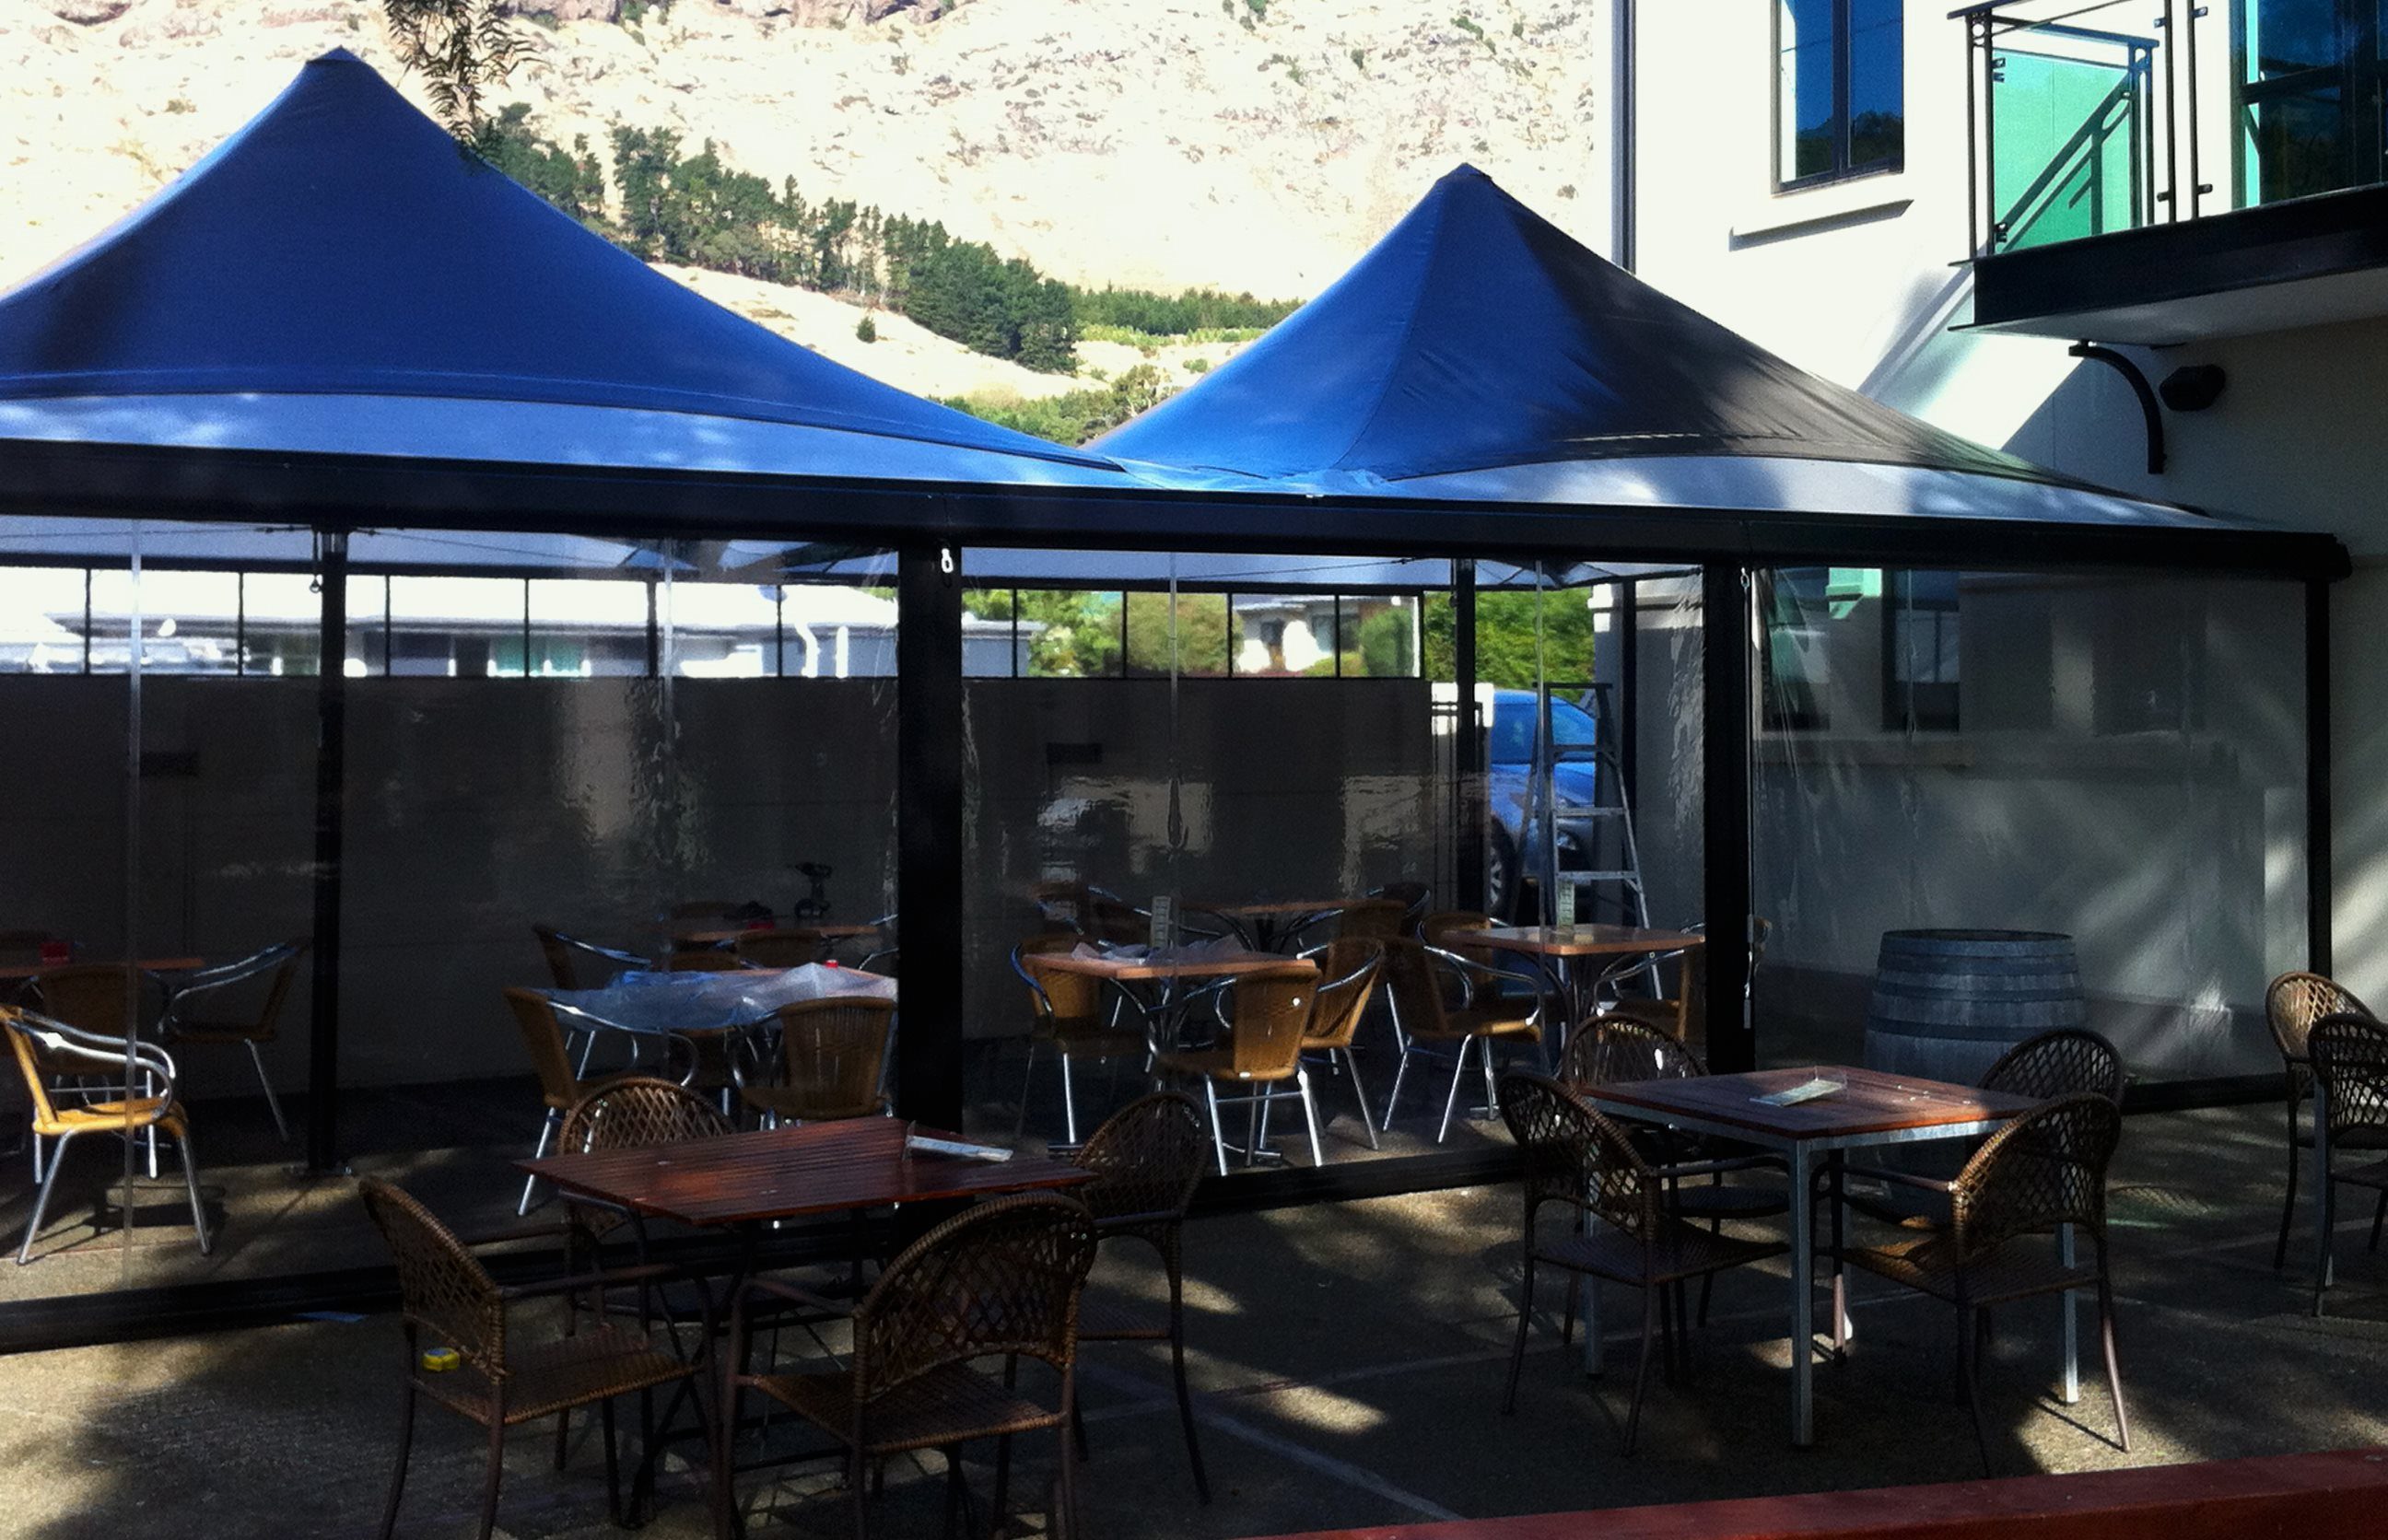 Parasol Umbrella providing shade for customers at the Valley Inn